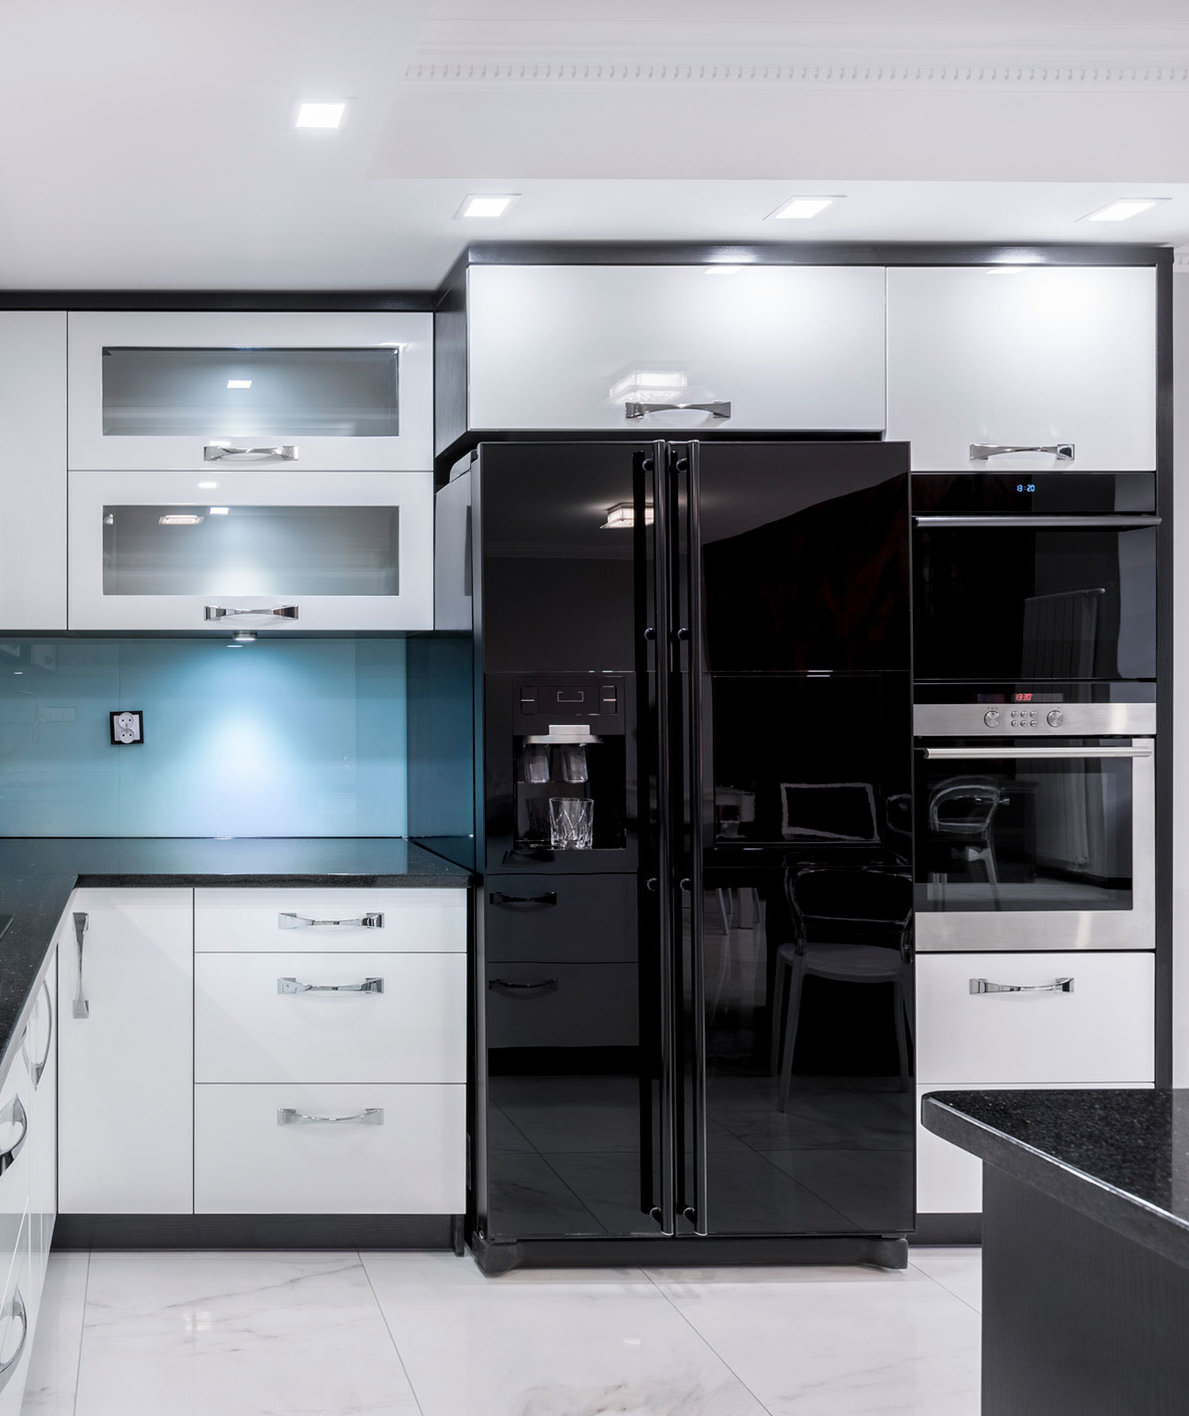 Black Stainless Steel Appliances Are the Hot Kitchen Trend We've Been Waiting For